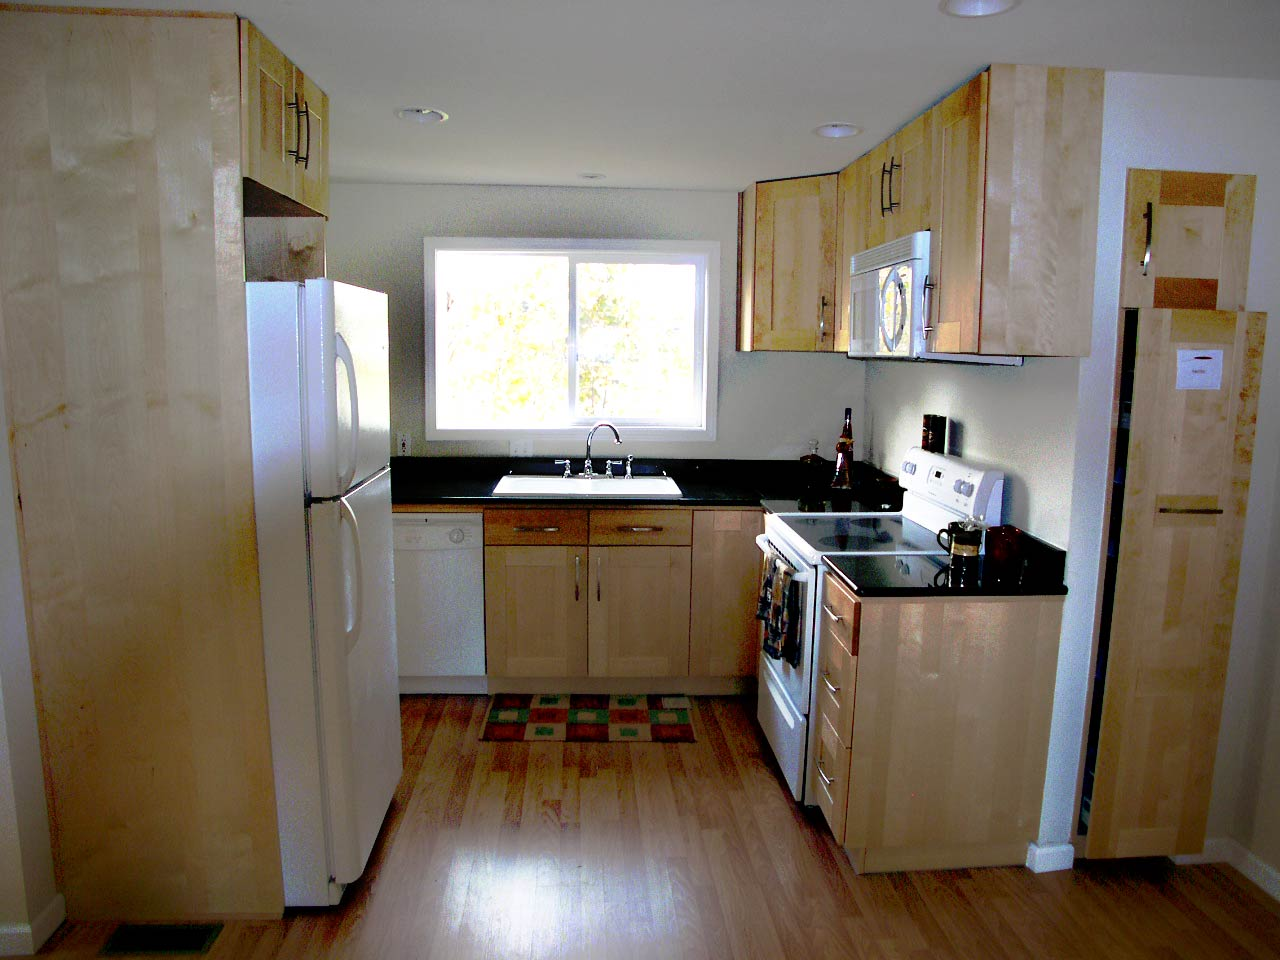 Clark Watson Home Remodel - Kitchen After